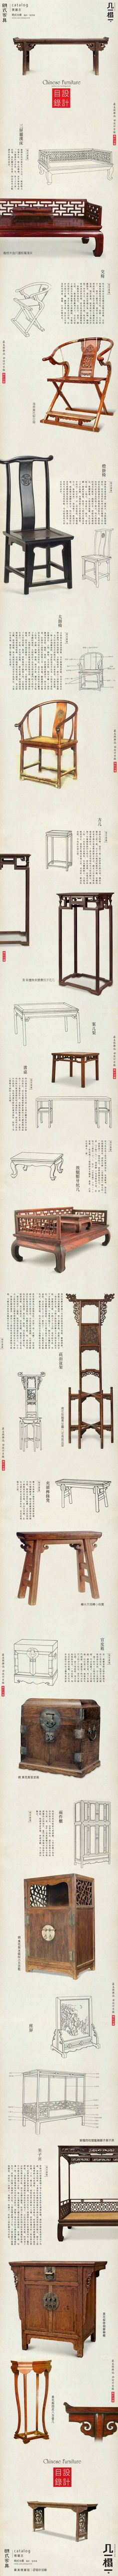 "DIAGRAM of Chinese furniture 明式家具 altar table, ""k'ang"" bed. yoke-back chair Antique Chinese Furniture, Asian Furniture, Oriental Furniture, Furniture Styles, Furniture Design, Chinese Interior, Asian Interior, Japanese Interior, New Chinese"